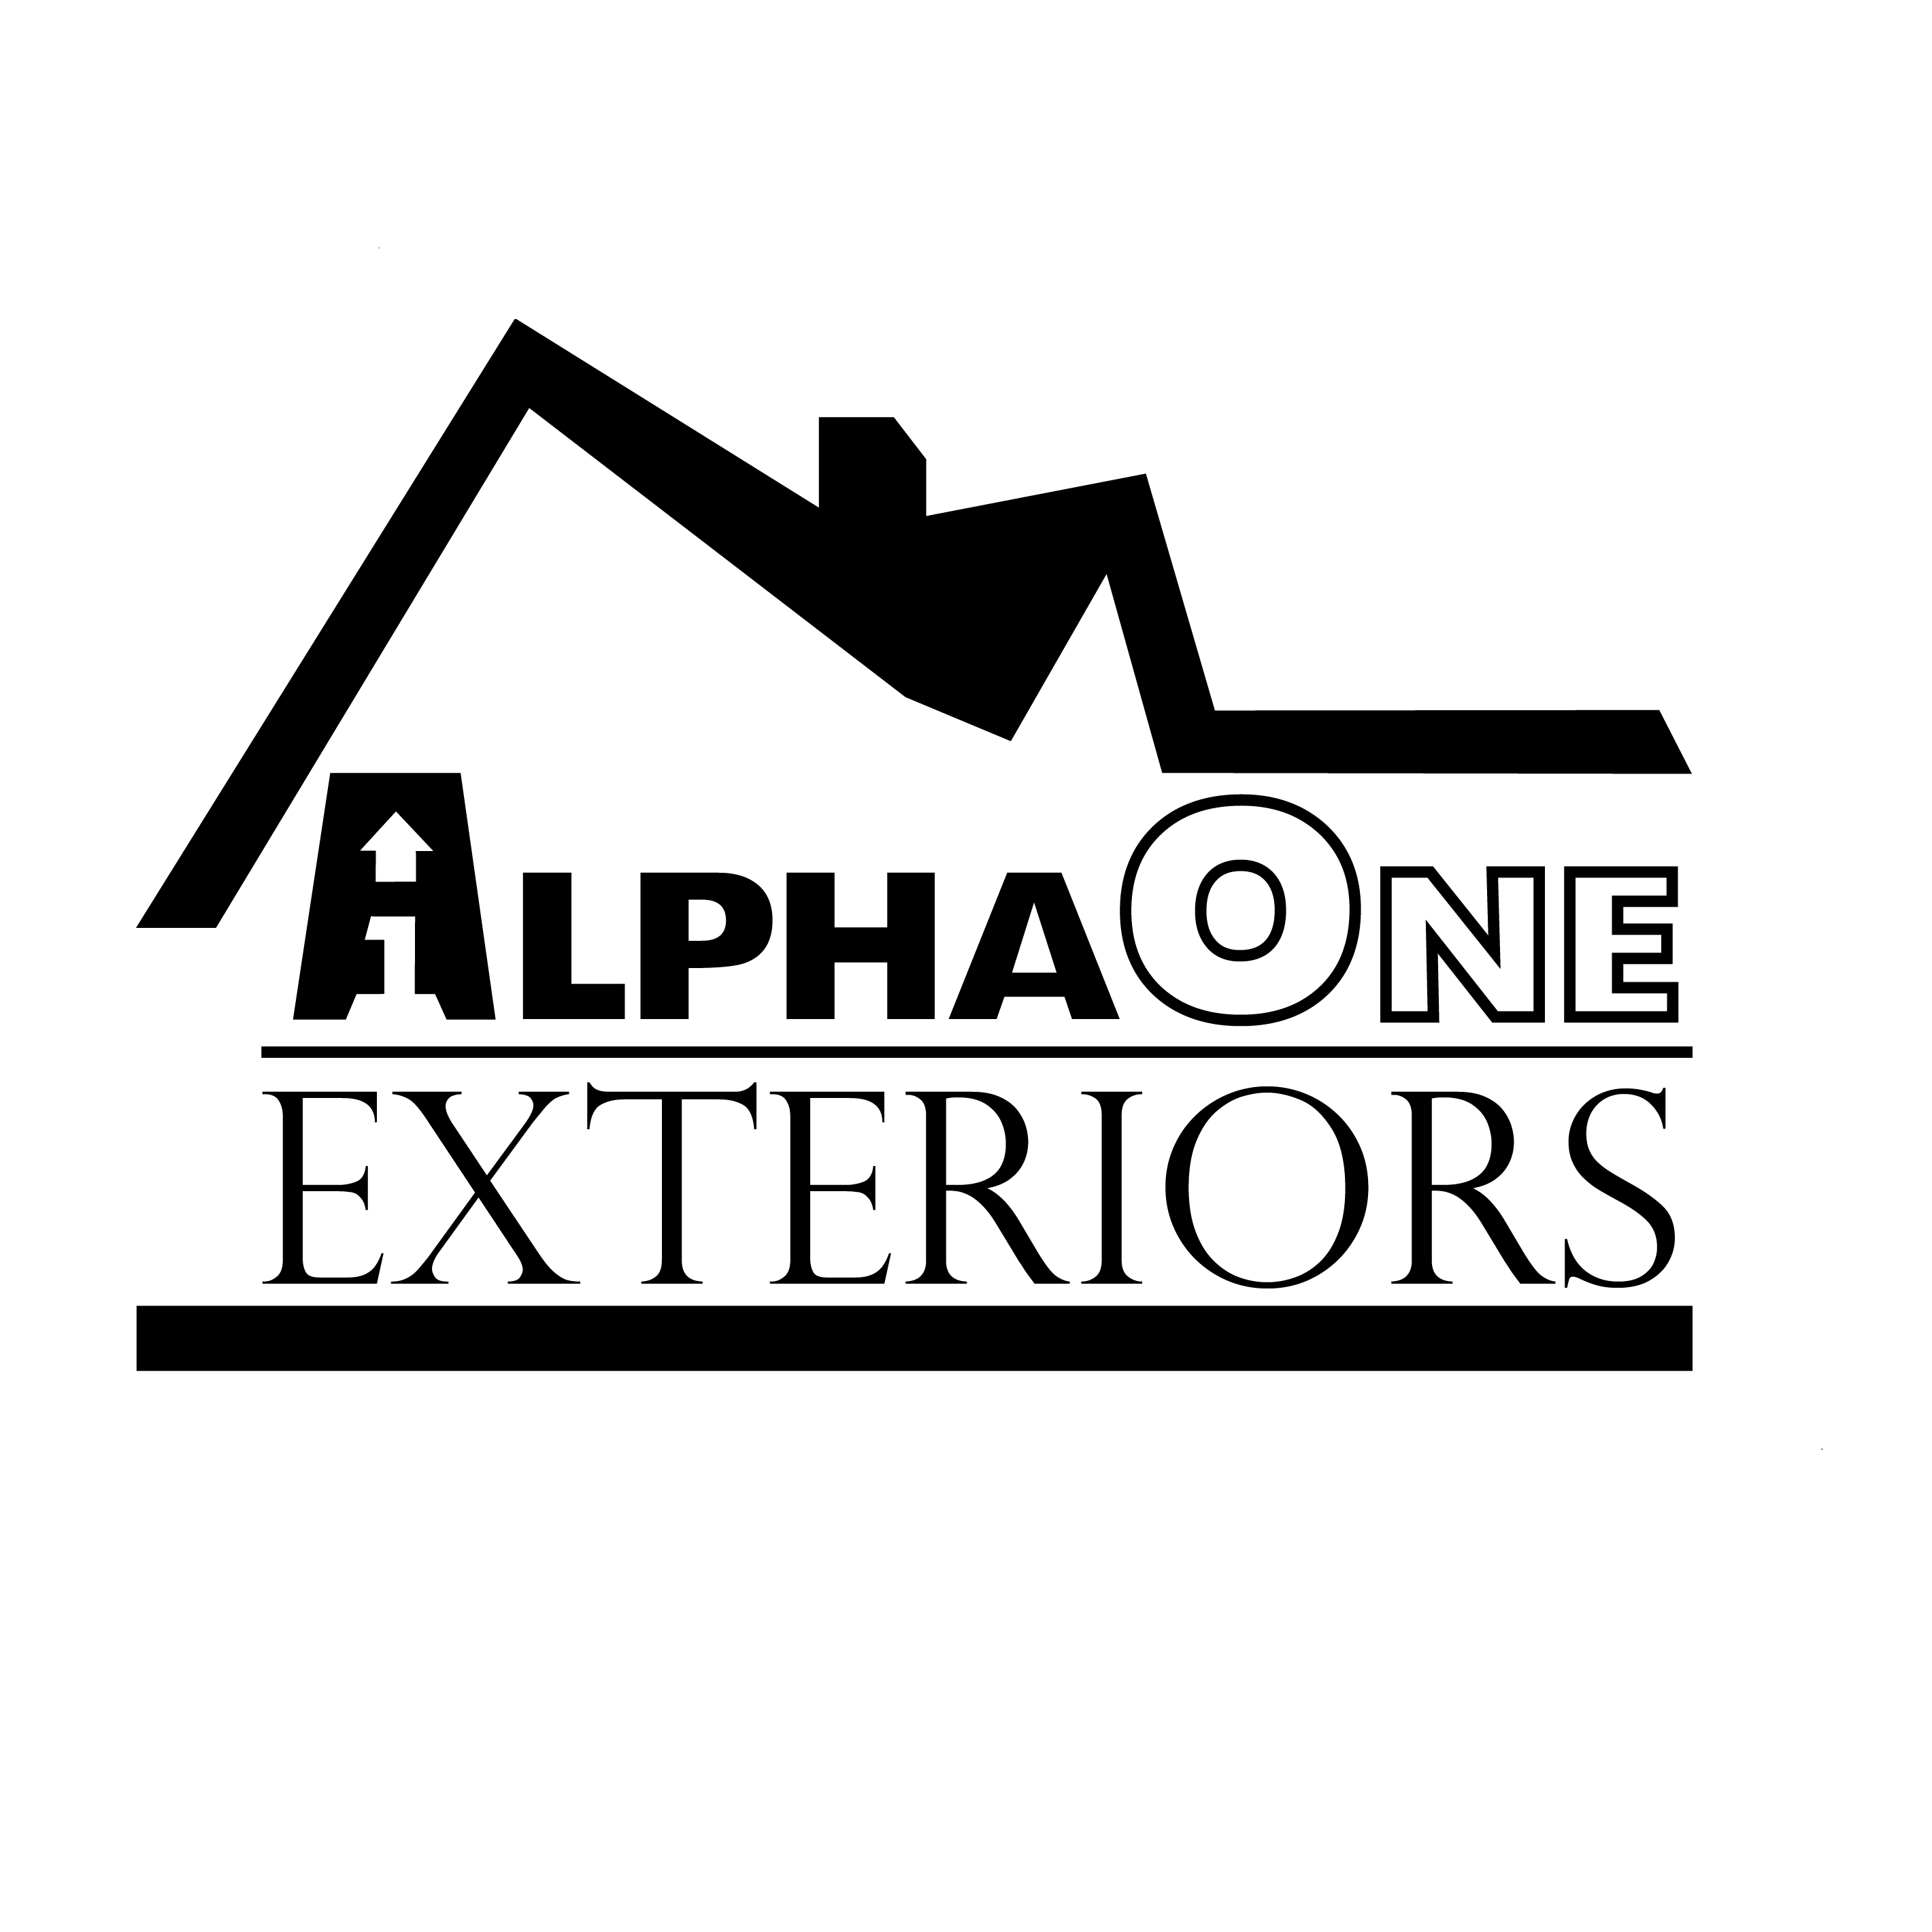 Alphaone Exteriors In Dayton Oh 937 510 4824